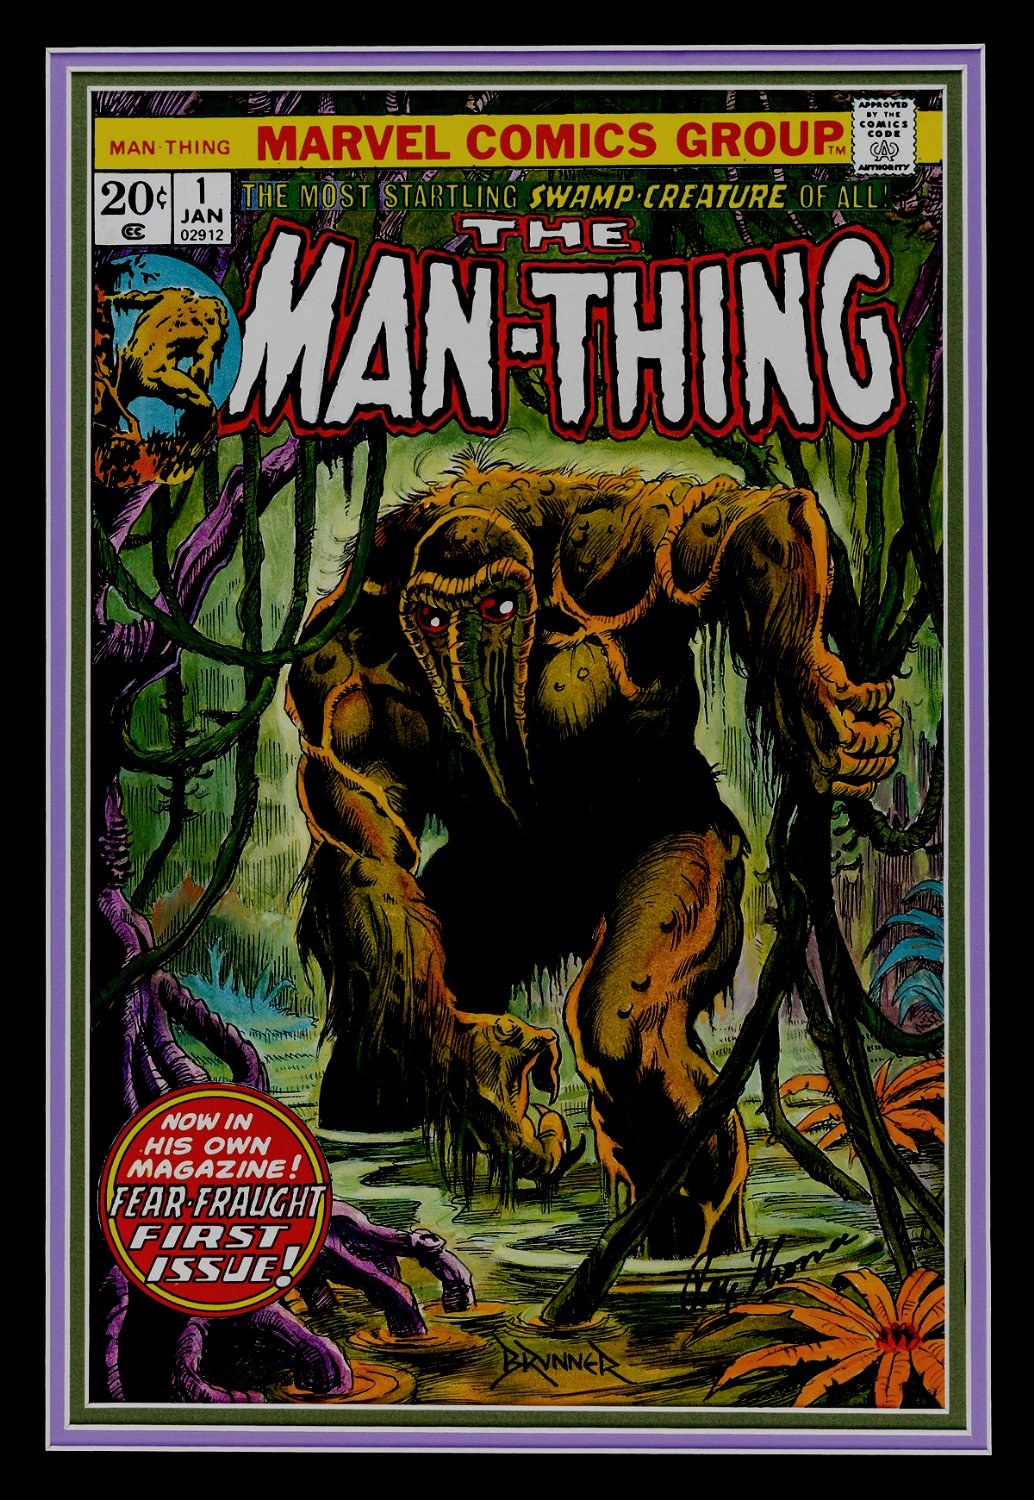 Man-Thing #1 Cover Re-Creation (SIMPLY STUNNING!) Large - 2008